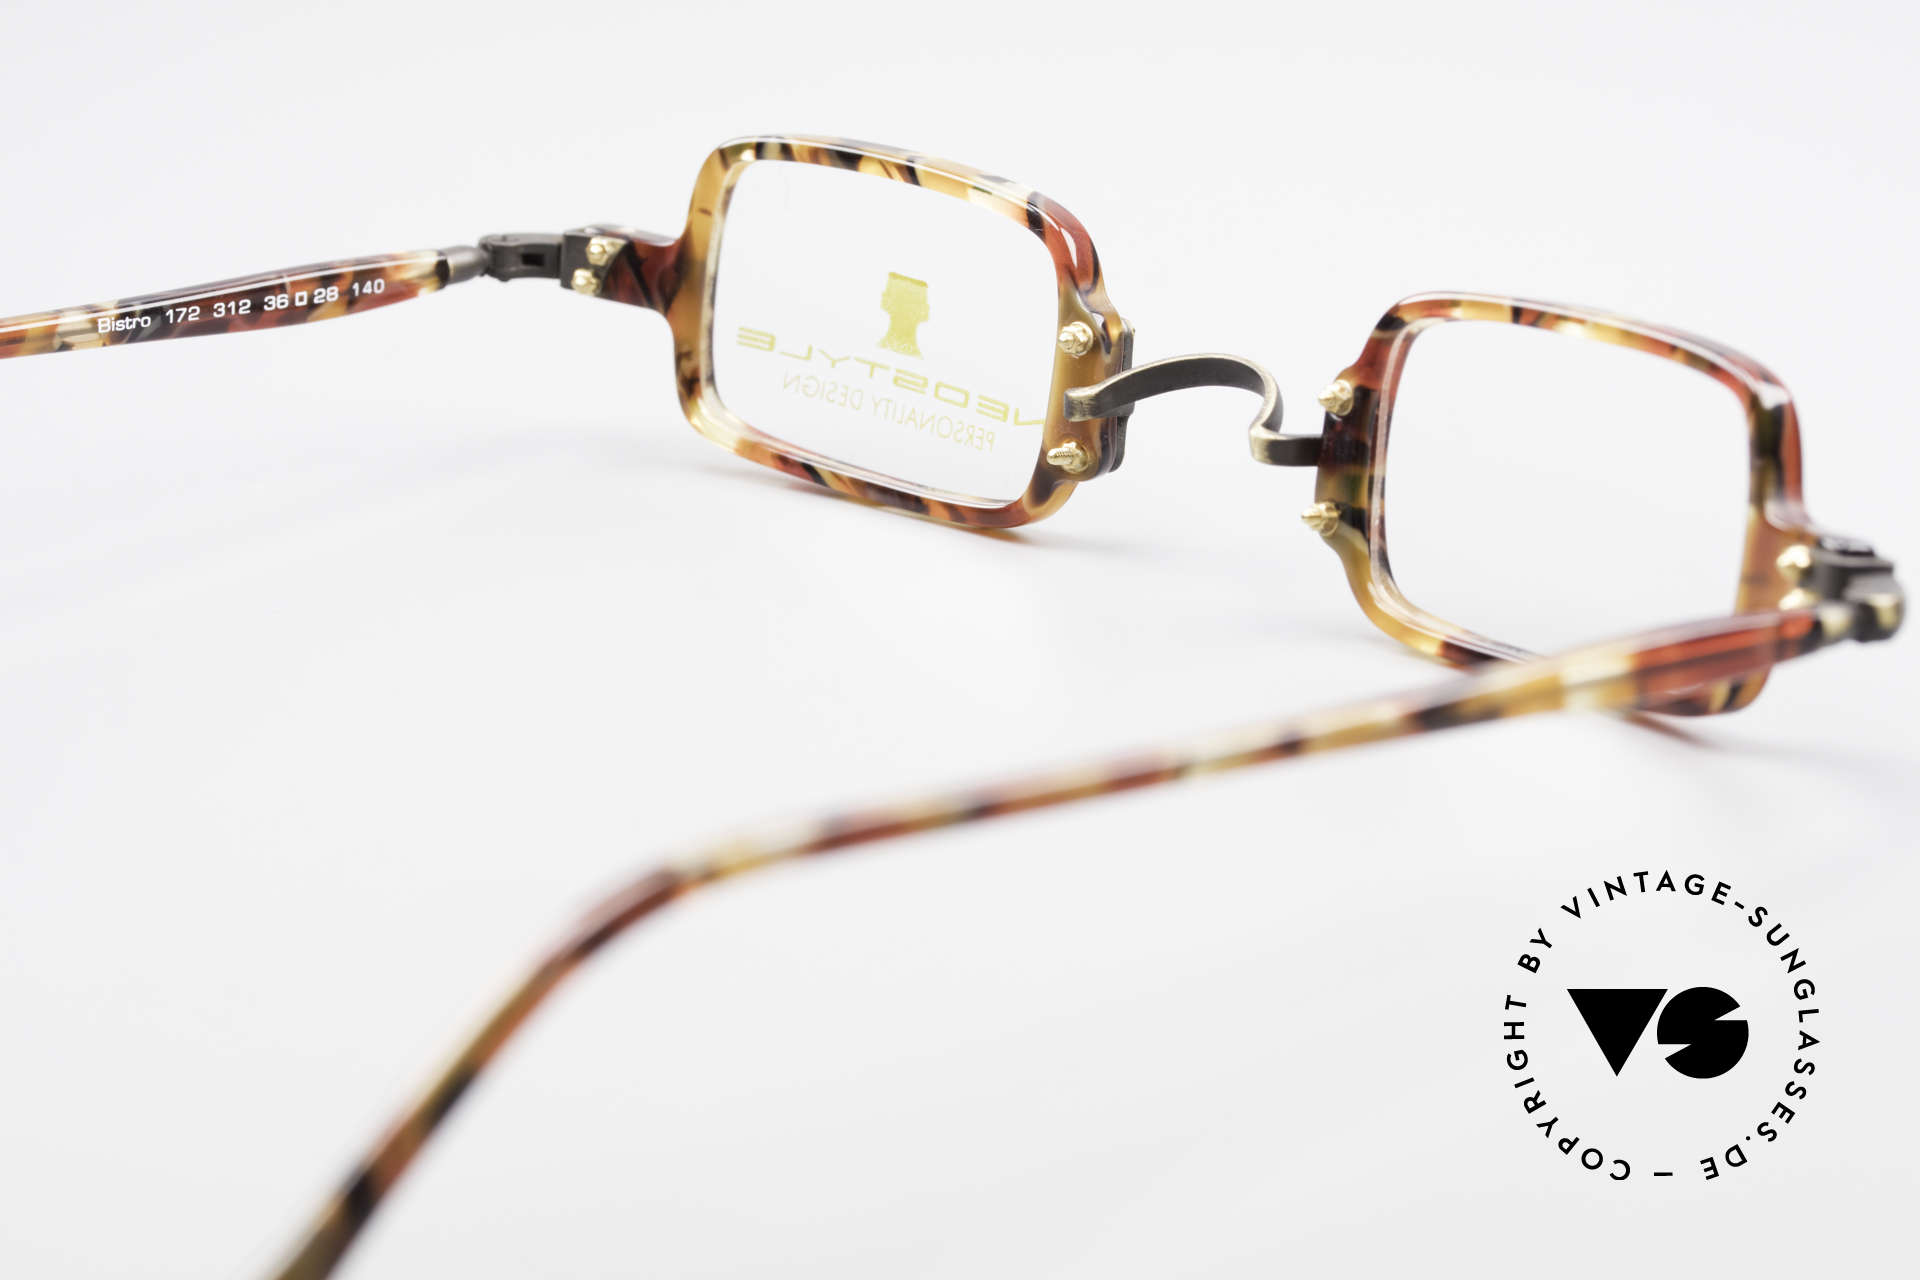 Neostyle Bistro 172 Square Vintage Unisex Frame, Size: medium, Made for Men and Women